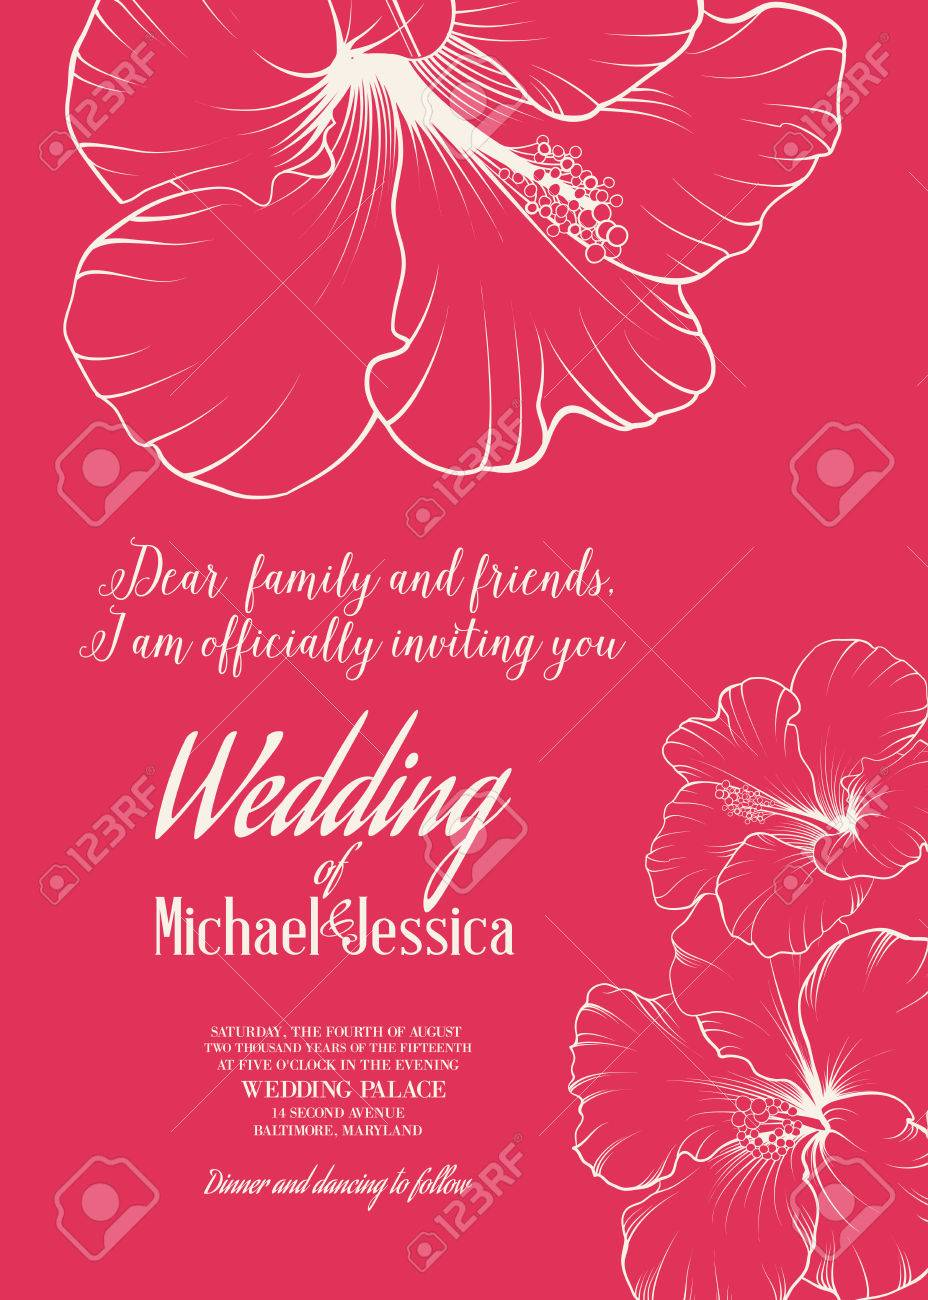 Wedding Invitation Template With Names Michael And Jessica With ...